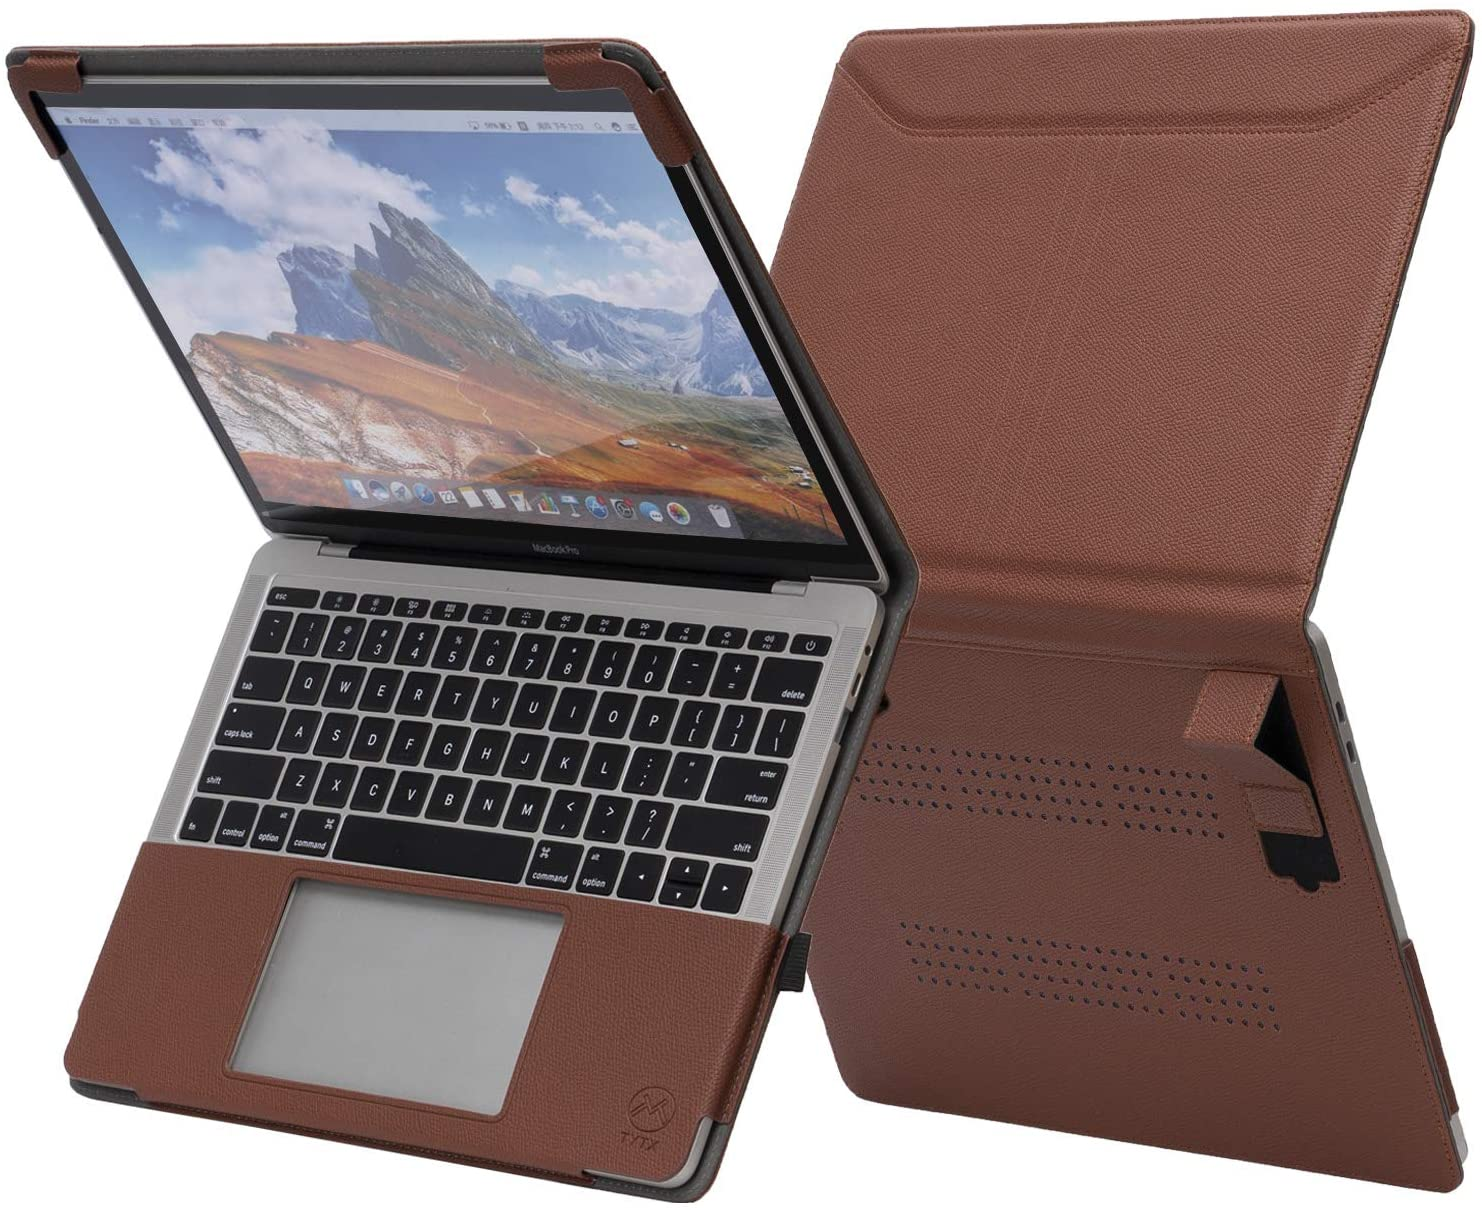 TYTX MacBook Air Leather Case with Vents and Stand Function 13 Inch 2020 2019 2018 (A2179 A1932) (Brown)